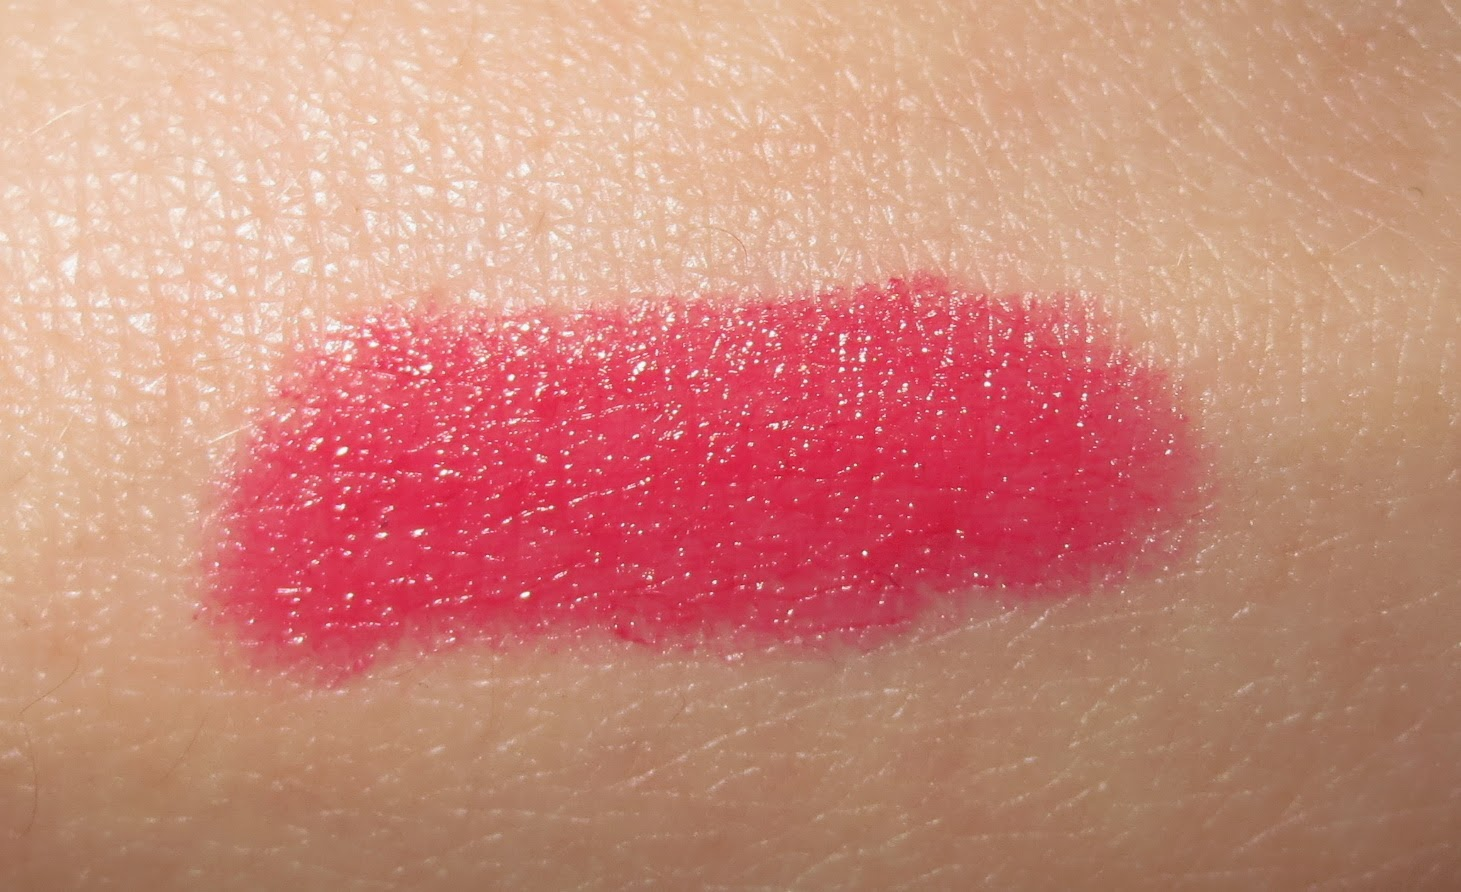 Clinique Chubby Stick Intense Moisturizing Lip Colour Balm - Plushest Punch swatch